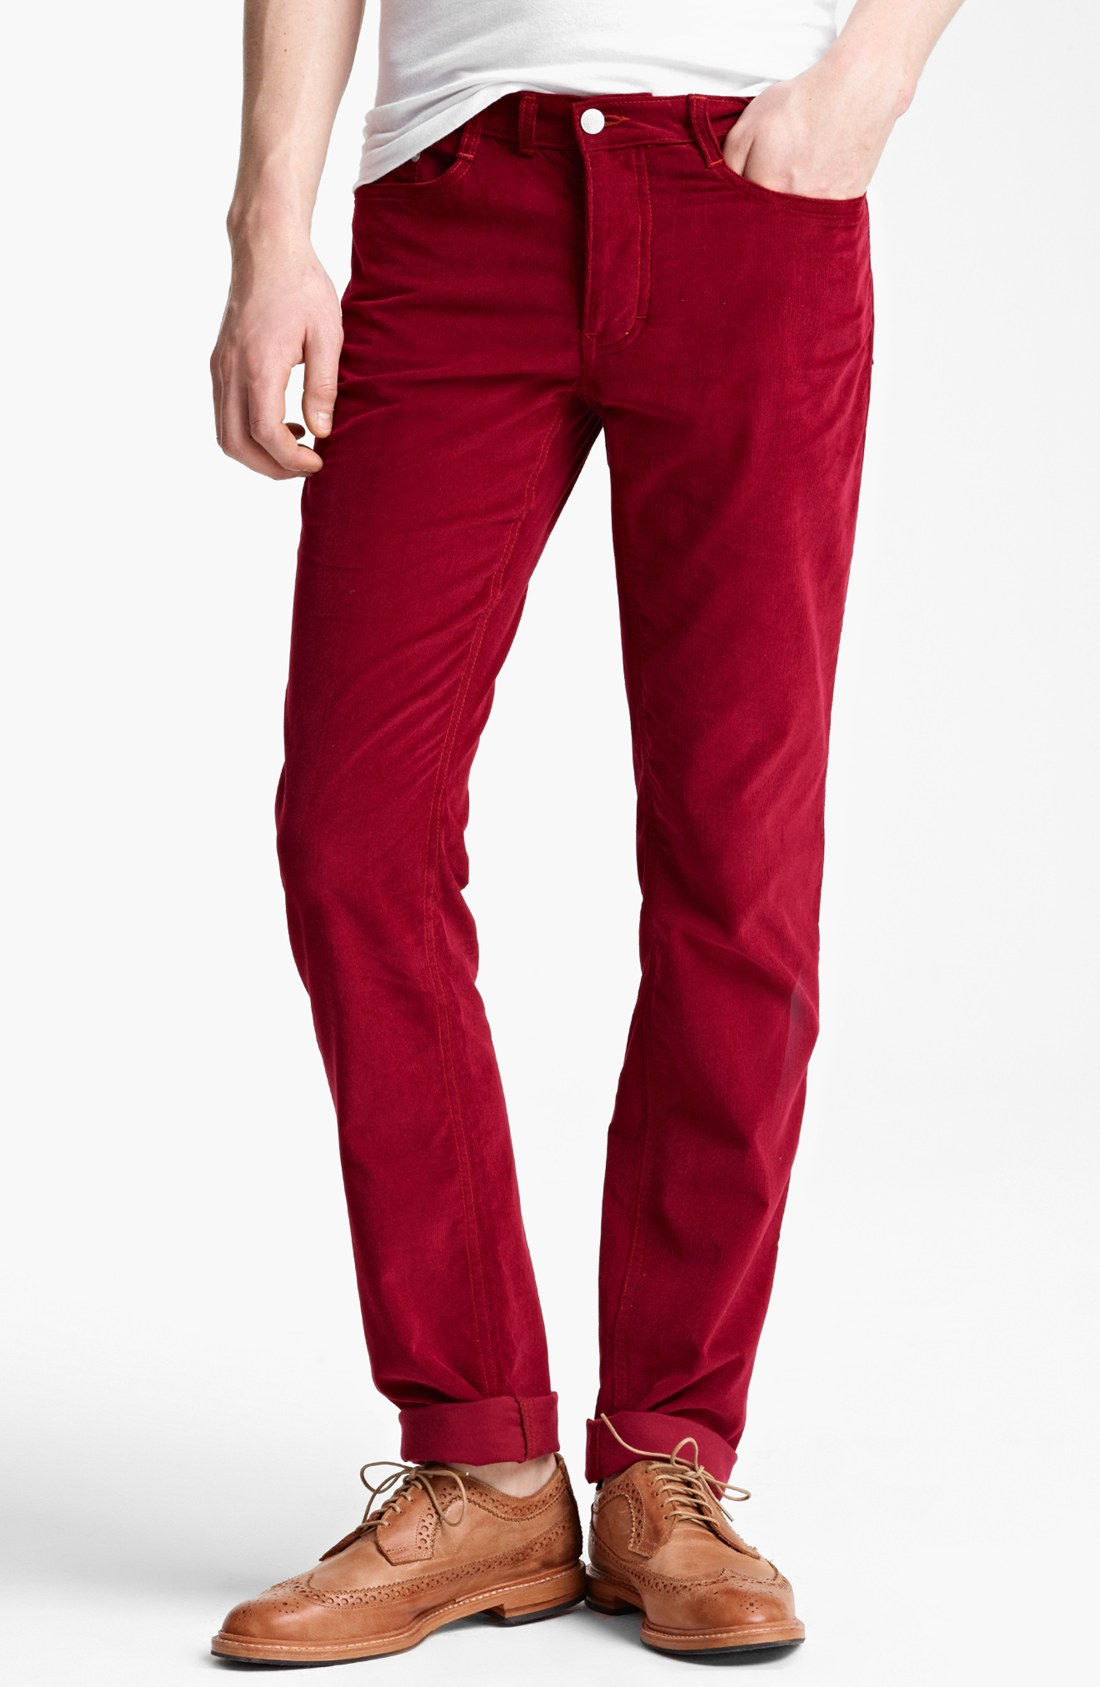 You searched for: red corduroy jeans! Etsy is the home to thousands of handmade, vintage, and one-of-a-kind products and gifts related to your search. No matter what you're looking for or where you are in the world, our global marketplace of sellers can help you find unique and affordable options. Let's get started!